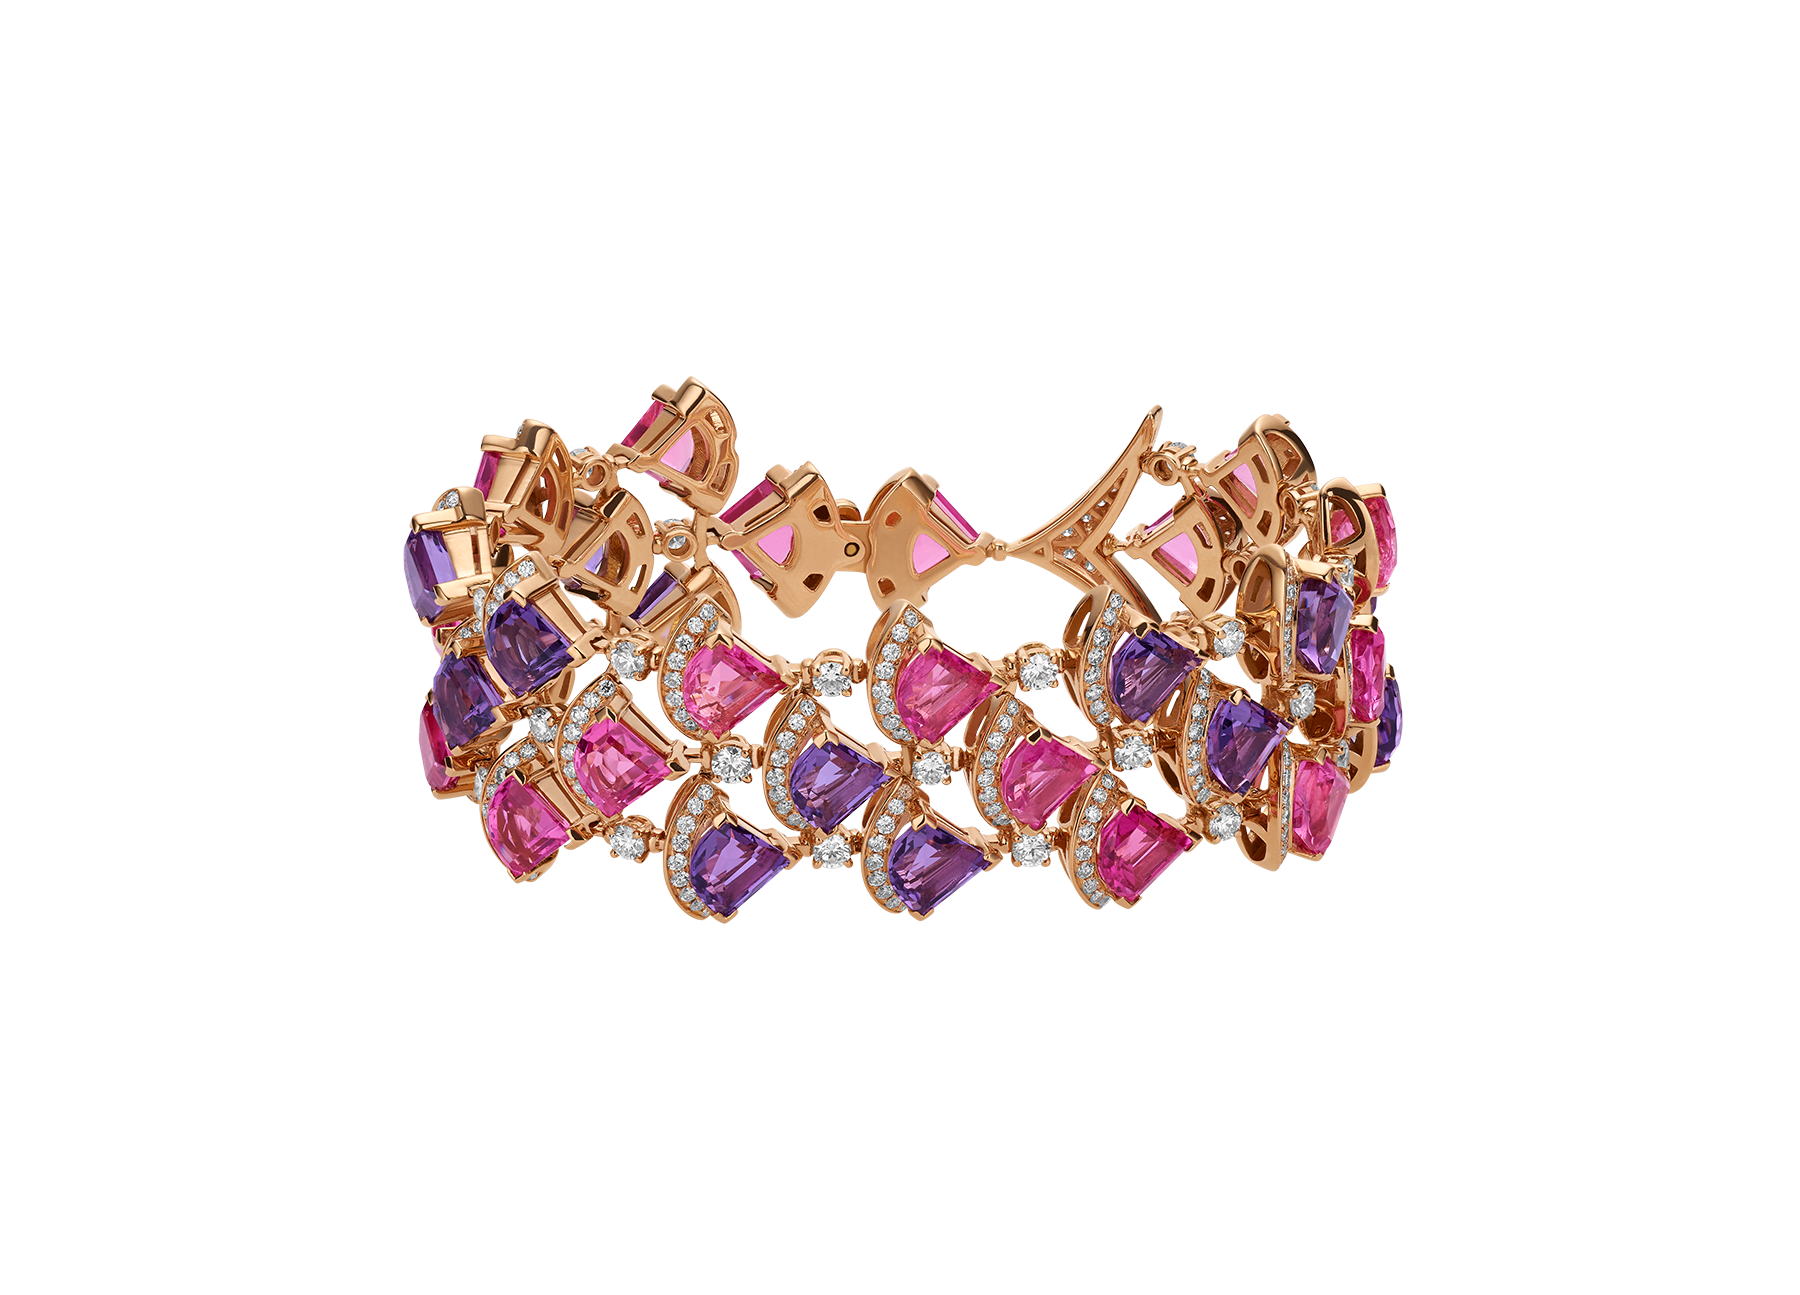 DIVAS' DREAM bracelet in 18 kt rose gold set with pink rubellite (14.05 ct), amethysts (10.65 ct) and pavè diamonds (4.15 ct). BR858025 image 2